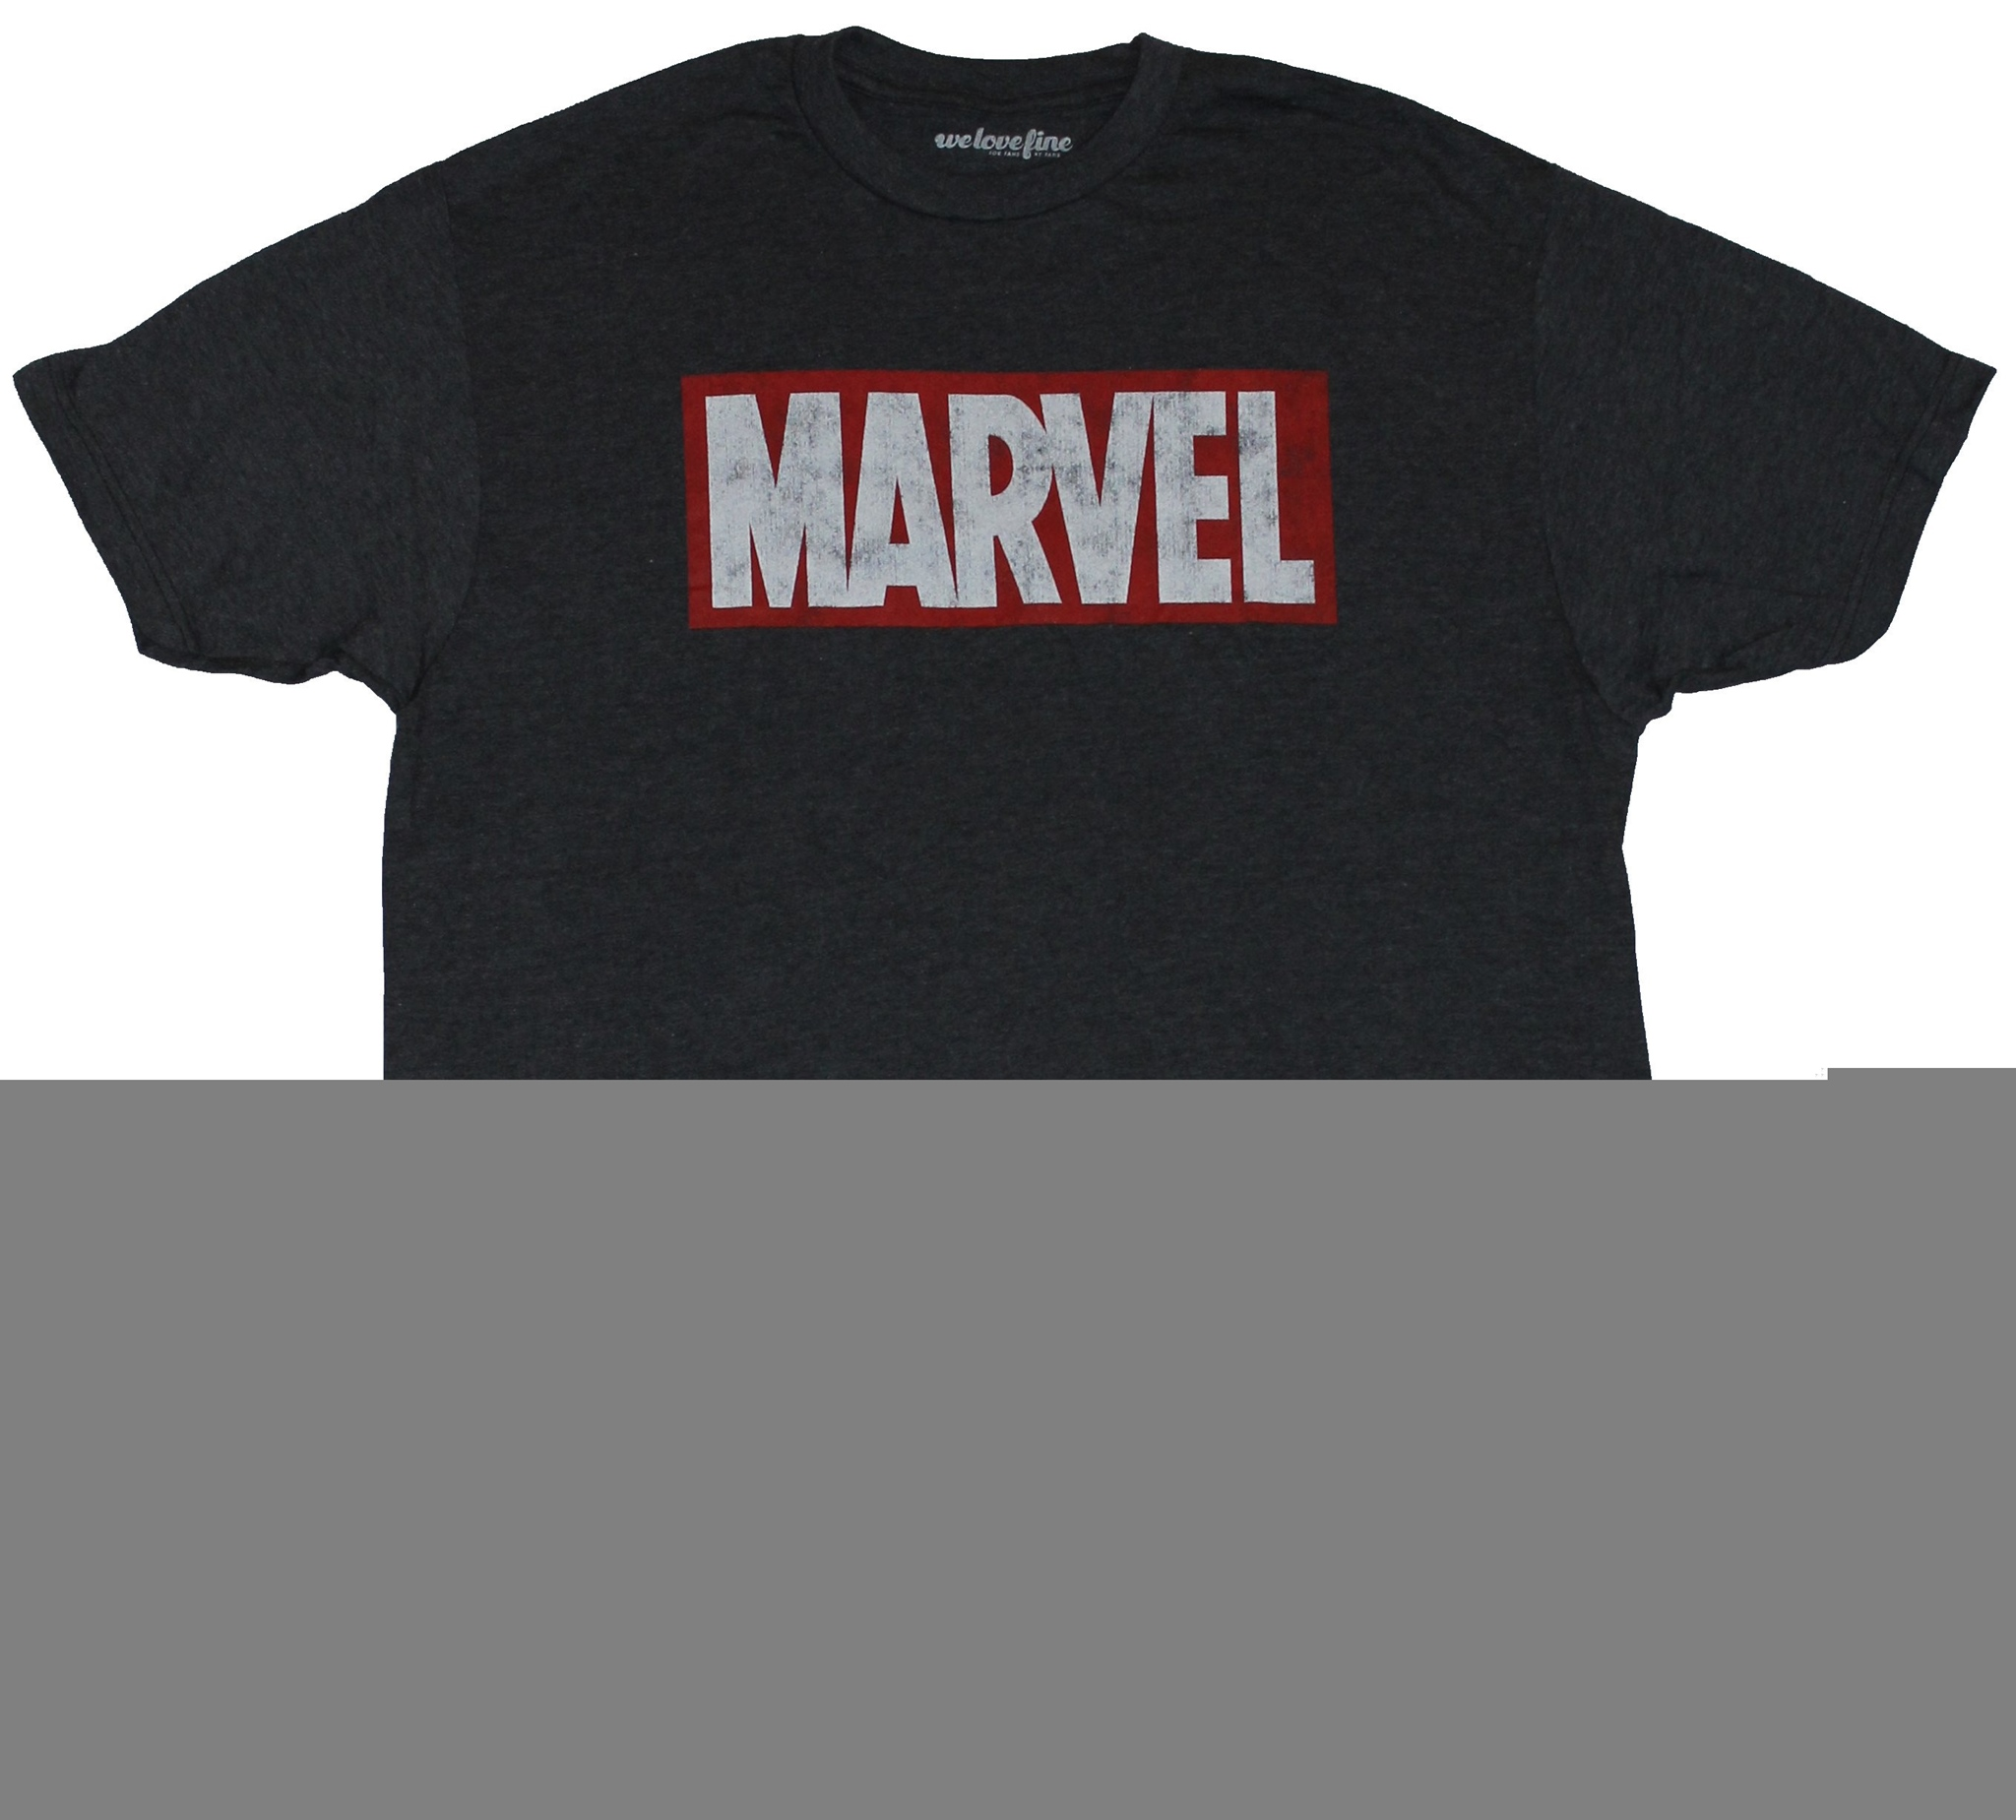 a84d7a47a6 Details about Marvel Comics Mens T-Shirt - Red and White Marvel Logo Box  Image